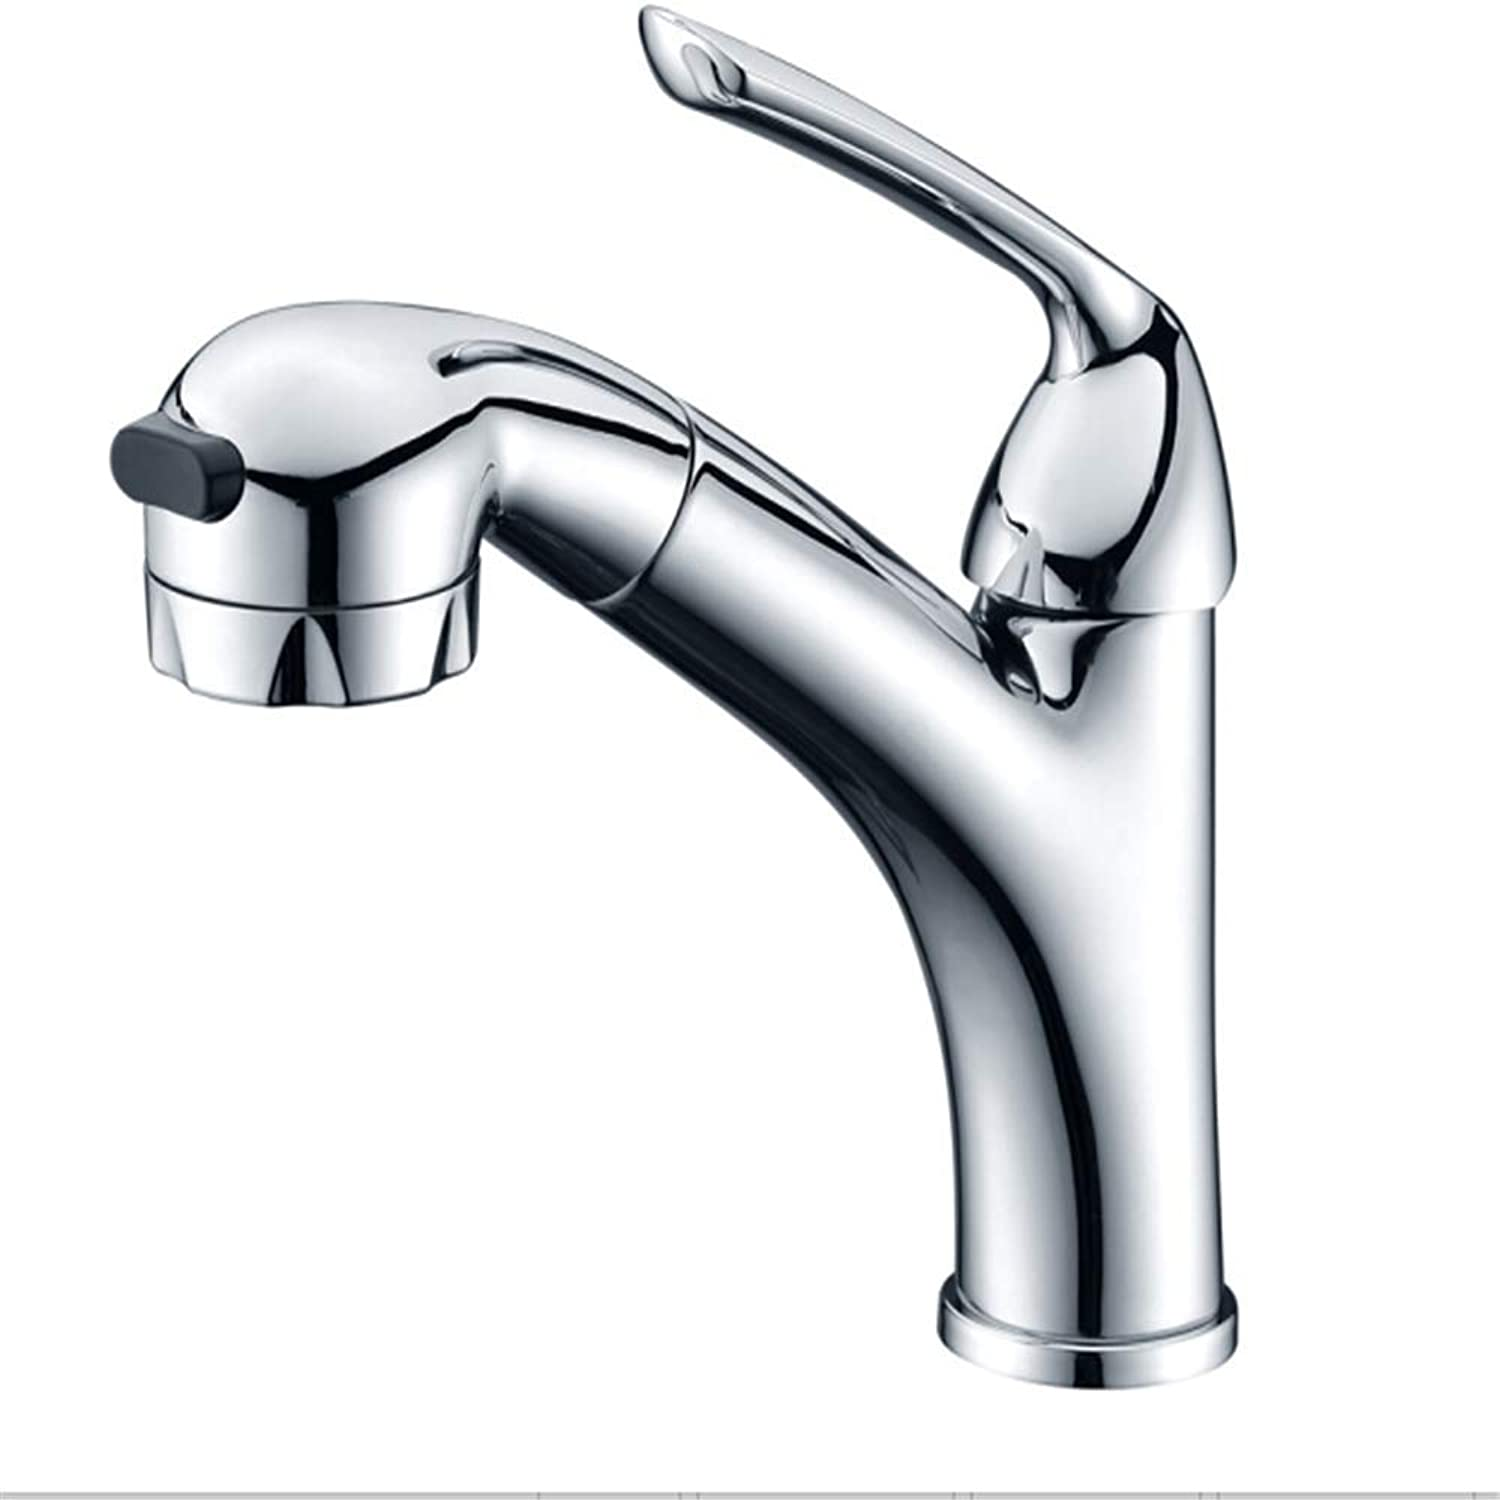 Kitchen Taps Faucet Modern Kitchen Sink Taps Stainless Steelfull Copper Cold and Hot Water Nozzle Washbasin Pull Faucet